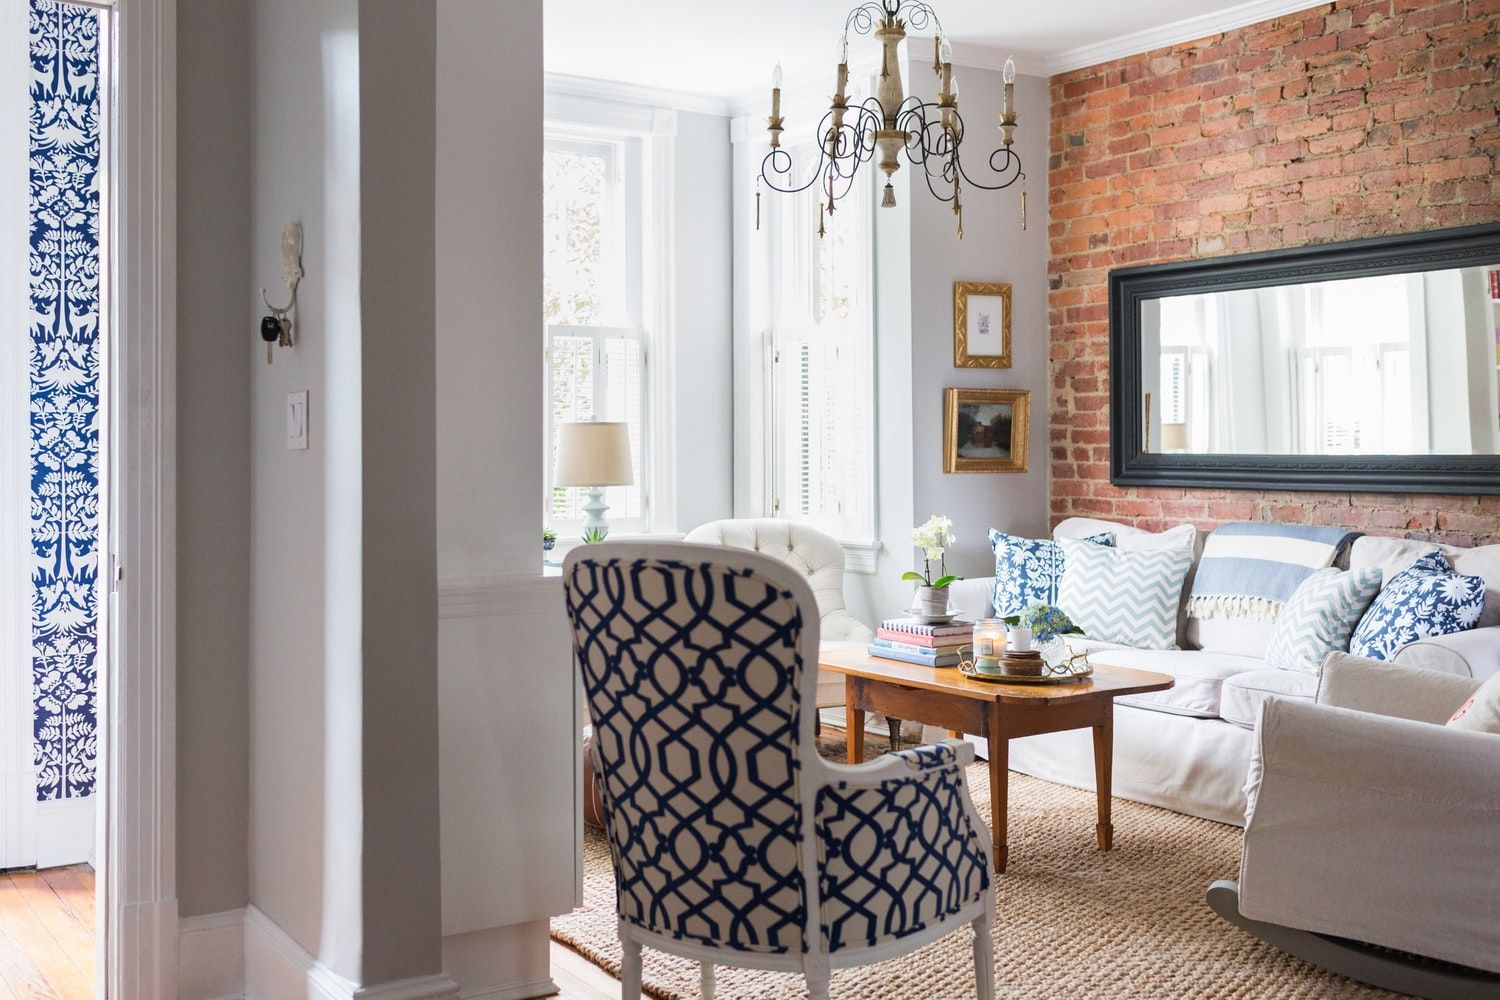 Cozy Southern Charm In A Hundred Year Old D C Family Row House House Tour Apartment Therapy Main Apartment